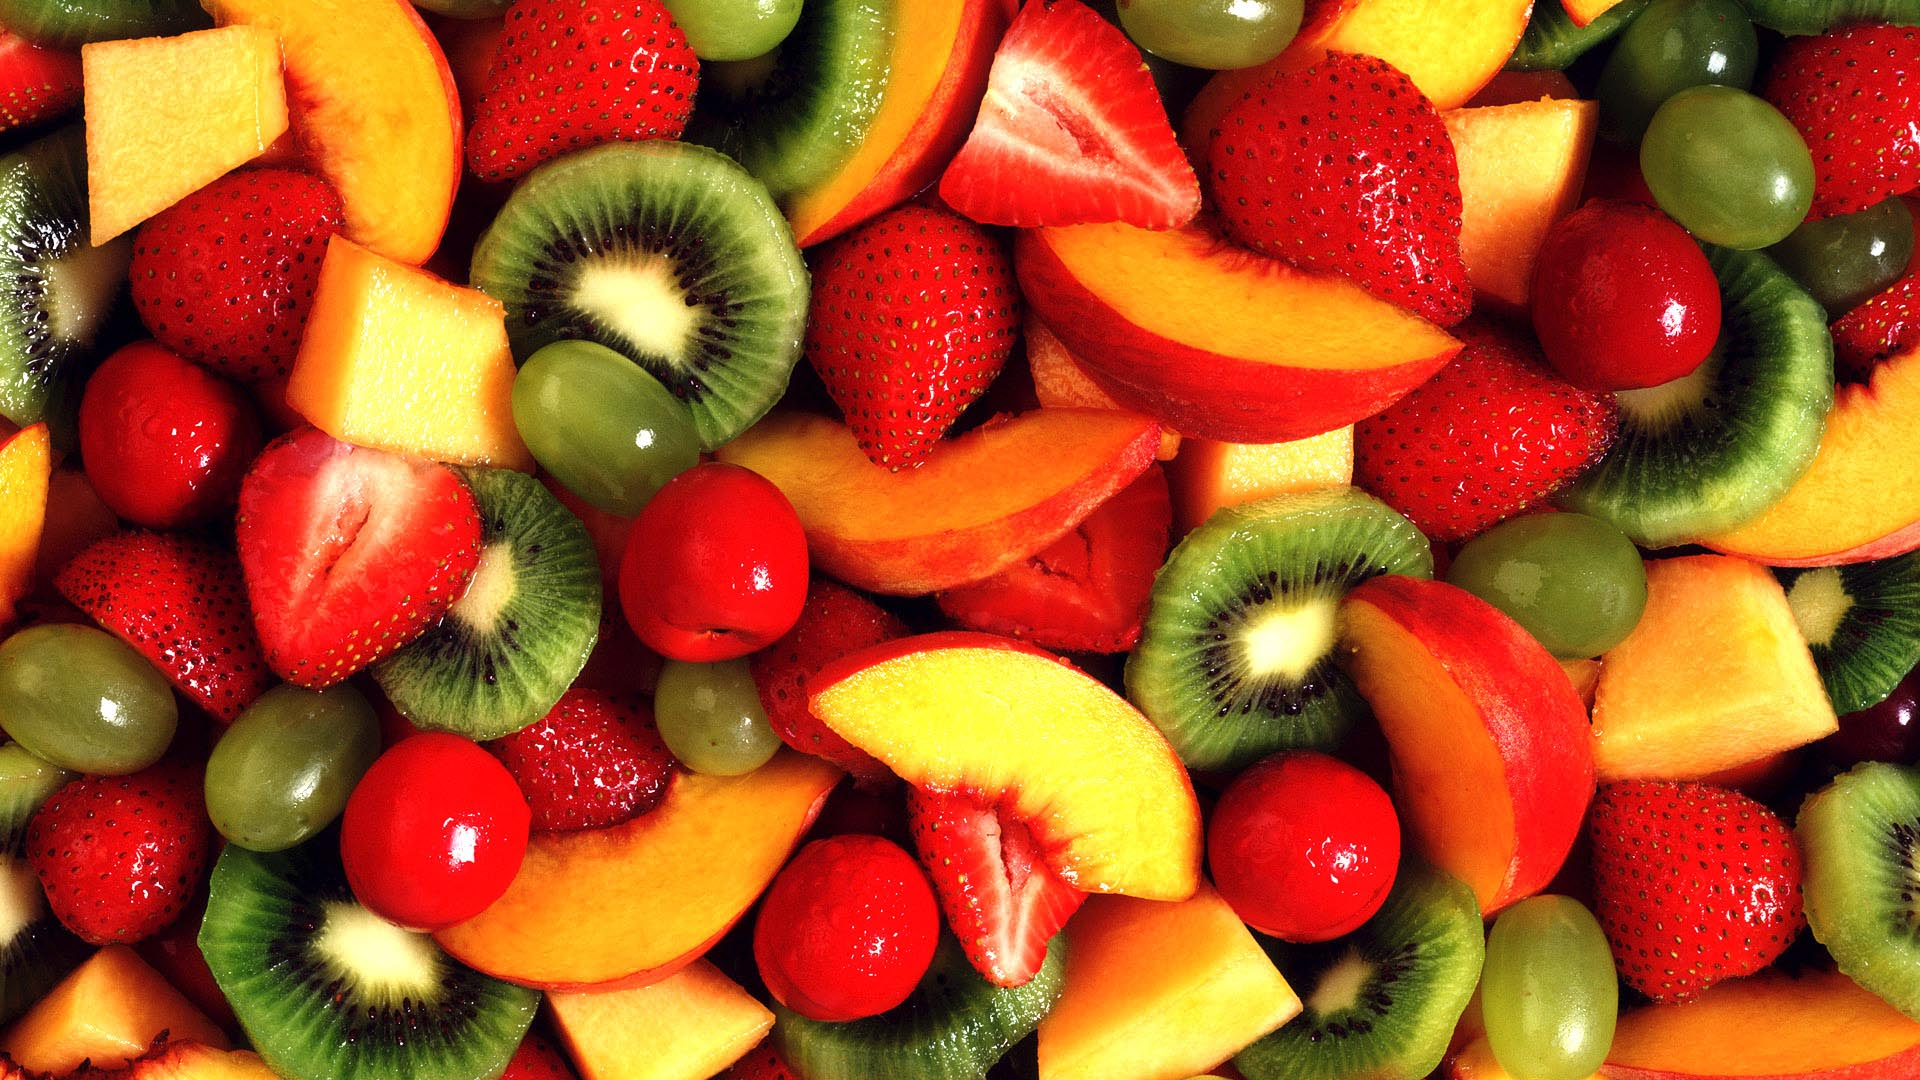 635910861623211856-932915970_fruit-wallpaper-20353-20863-hd-wallpapers